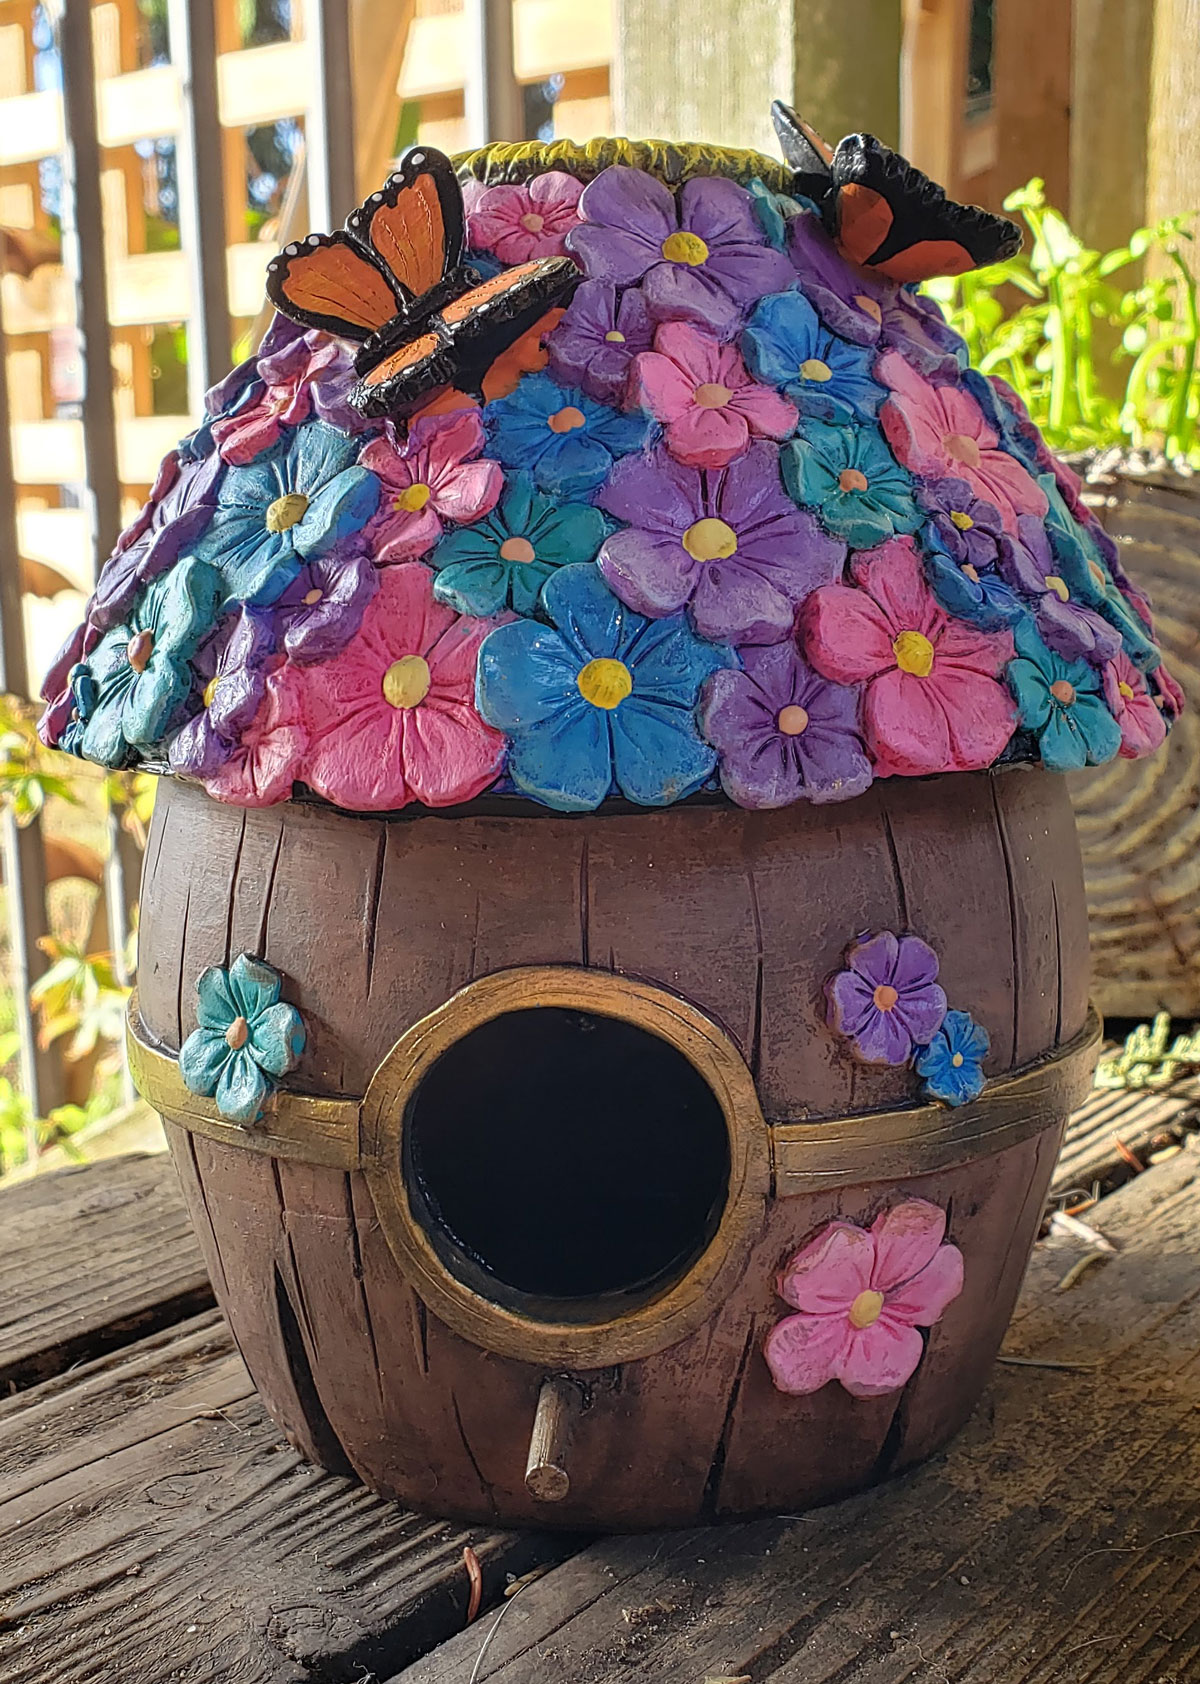 Front/side view of the finished flower barrel birdhouse with butterflies